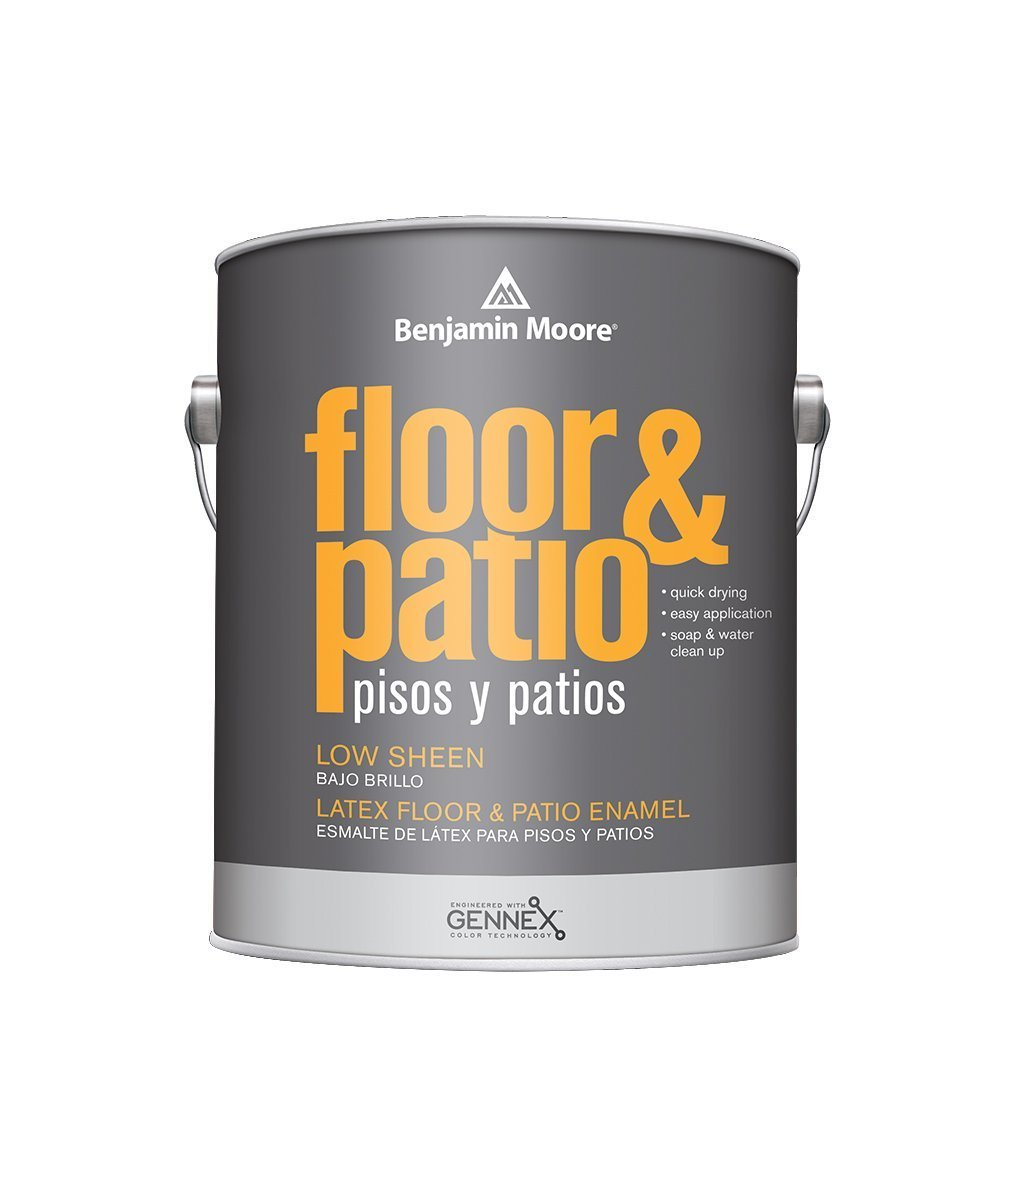 Benjamin Moore floor and patio low sheen Interior Paint available at Wallauer Paint & Design.